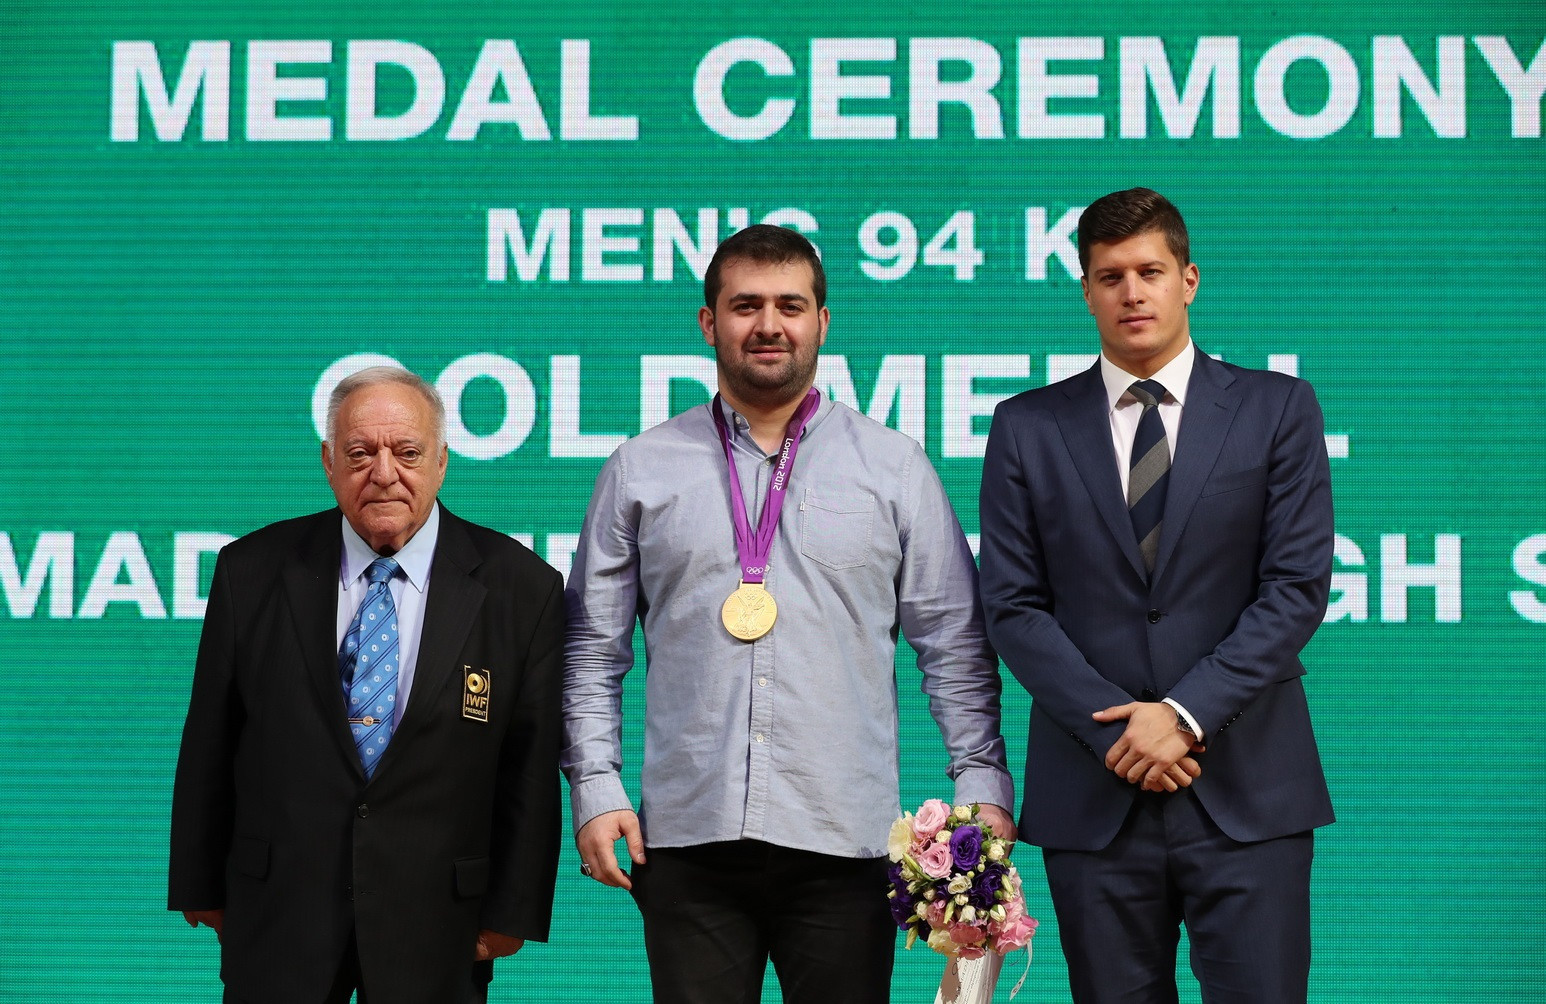 Iranian weightlifter Mohammadpour receives retrospective gold medal from notorious London 2012 men's 94kg category